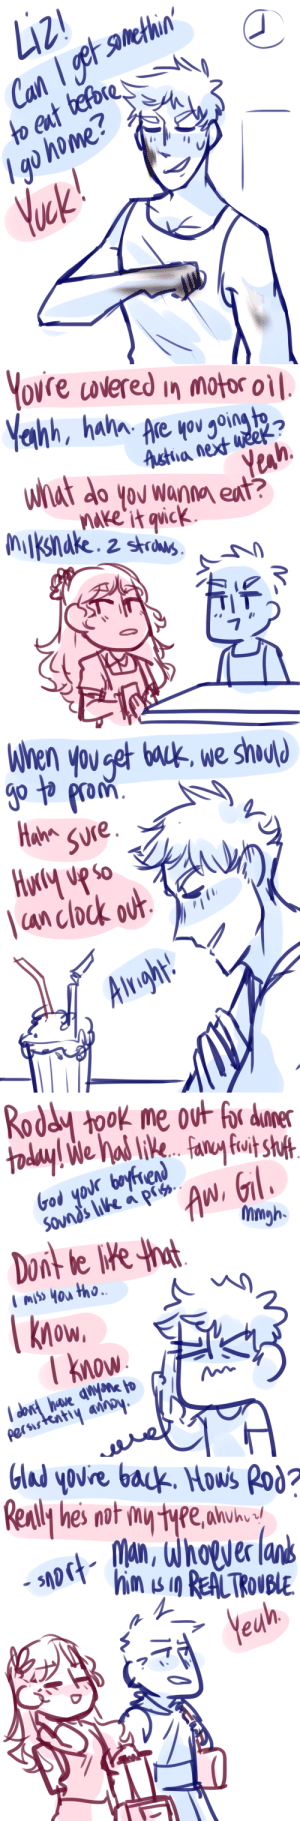 ask-art-student-prussia:  Liza worked in a diner during high school and gil as a mechanic (cuz i dig that weirdly specific trope).  btw prom night part1 and part2. read under the cut btw. Keep reading: Liz!  21  Can 1get amethin'  to eat tefore  Igo home?  Yek!   ovre overed in motor oil  Are you going te  Astiha next week ?  What do you wanna eat?  Yeah  nake it qvick  MKnake. z strus   When you get bauk, we shuld  go to prom  Hame  SUre.  \an clock out  Alright!   Roddy took me out for dumer  today! We Nad like.. Faruyfuit sht  God your bayfiend  Sound's lke a pis  AW.GIl  Mmgh  Don't le Ne that  mIS YOu tho.  know.  T know  dont have nyne to  perstatiy anoy   Glad youre back. Howis Rod?  Really he's not my type.ahuhu  Man, whover lans  him s in REALTRONBE  Yeuh ask-art-student-prussia:  Liza worked in a diner during high school and gil as a mechanic (cuz i dig that weirdly specific trope).  btw prom night part1 and part2. read under the cut btw. Keep reading